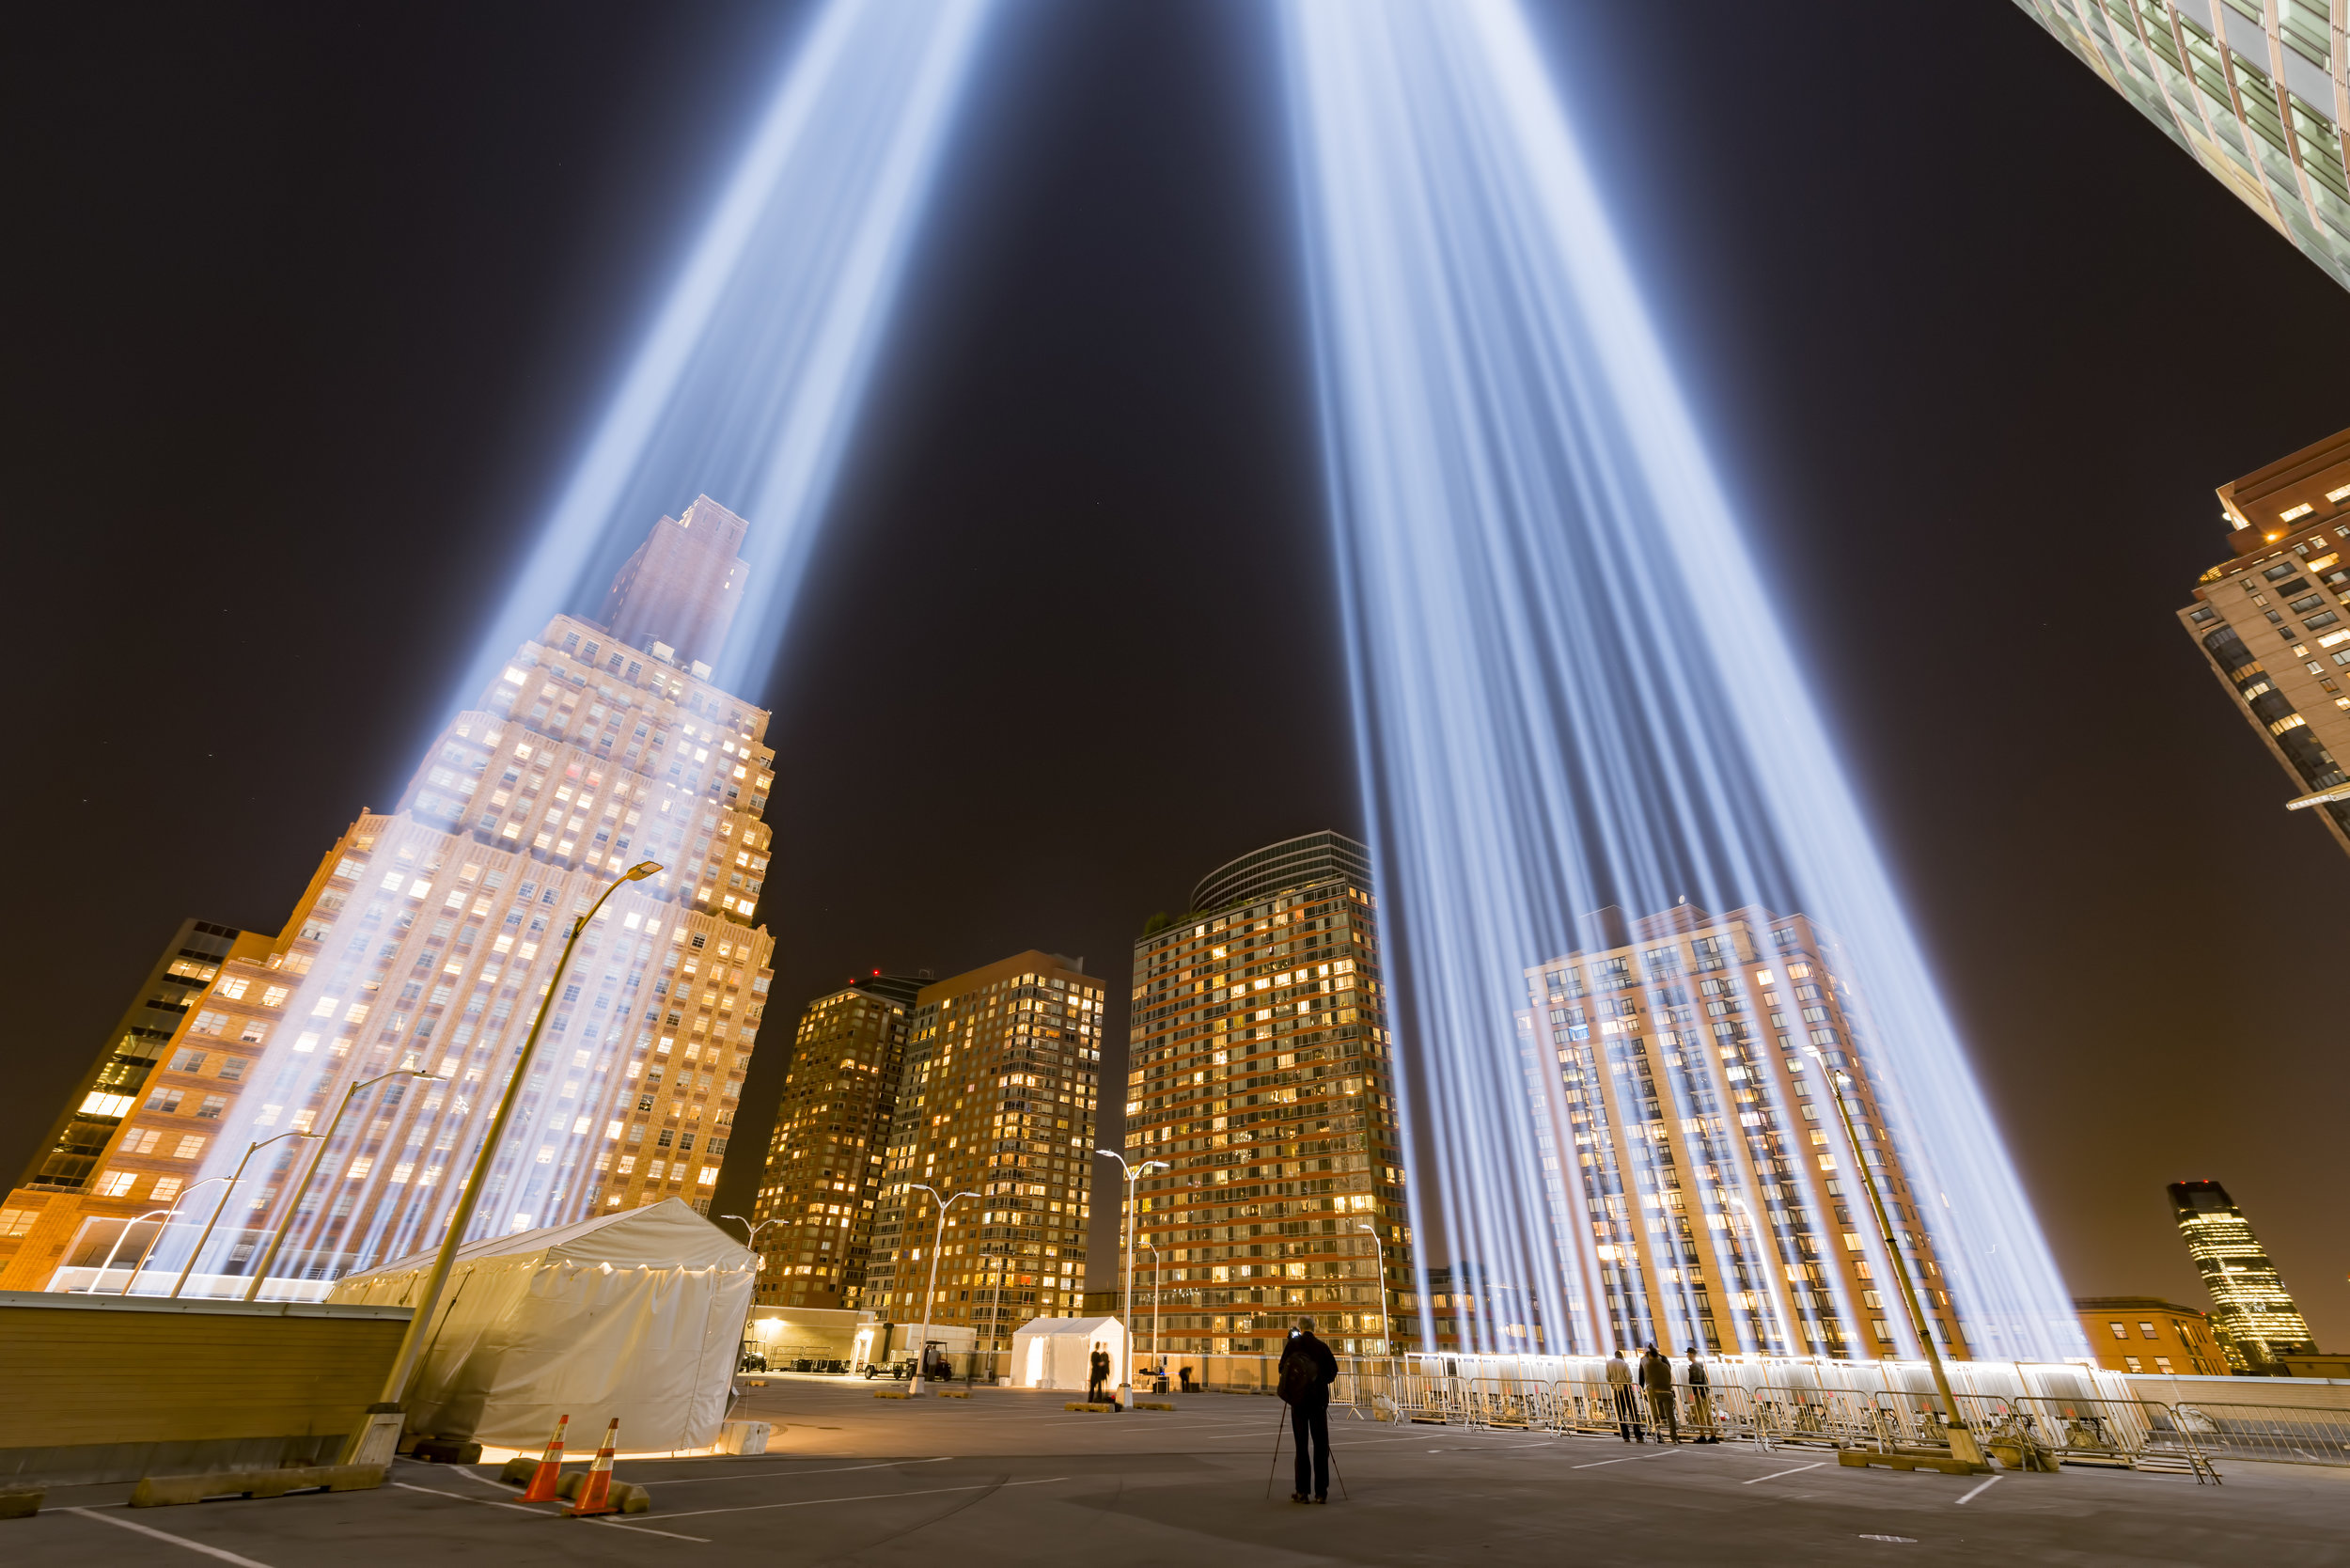 September 2017 I had the amazing opportunity to visit the Tribute of light installation that can be seen across all of New York, It is a memorial to the lives lost in the terrorist attack on the World Trade center. This was taken on the roof of the Battery Parking Garage south of the 9/11 Memorial, the twin beams reach up to four miles into the sky and are comprised of 88 7,000-watt xenon light bulbs positioned into two 48-foot squares, echoing the shape and orientation of the Twin Towers. The shot above is of me lying inside the nearest of the squares of lights shooting up through the centre of the lights to create the image you can see in my landscapes page.